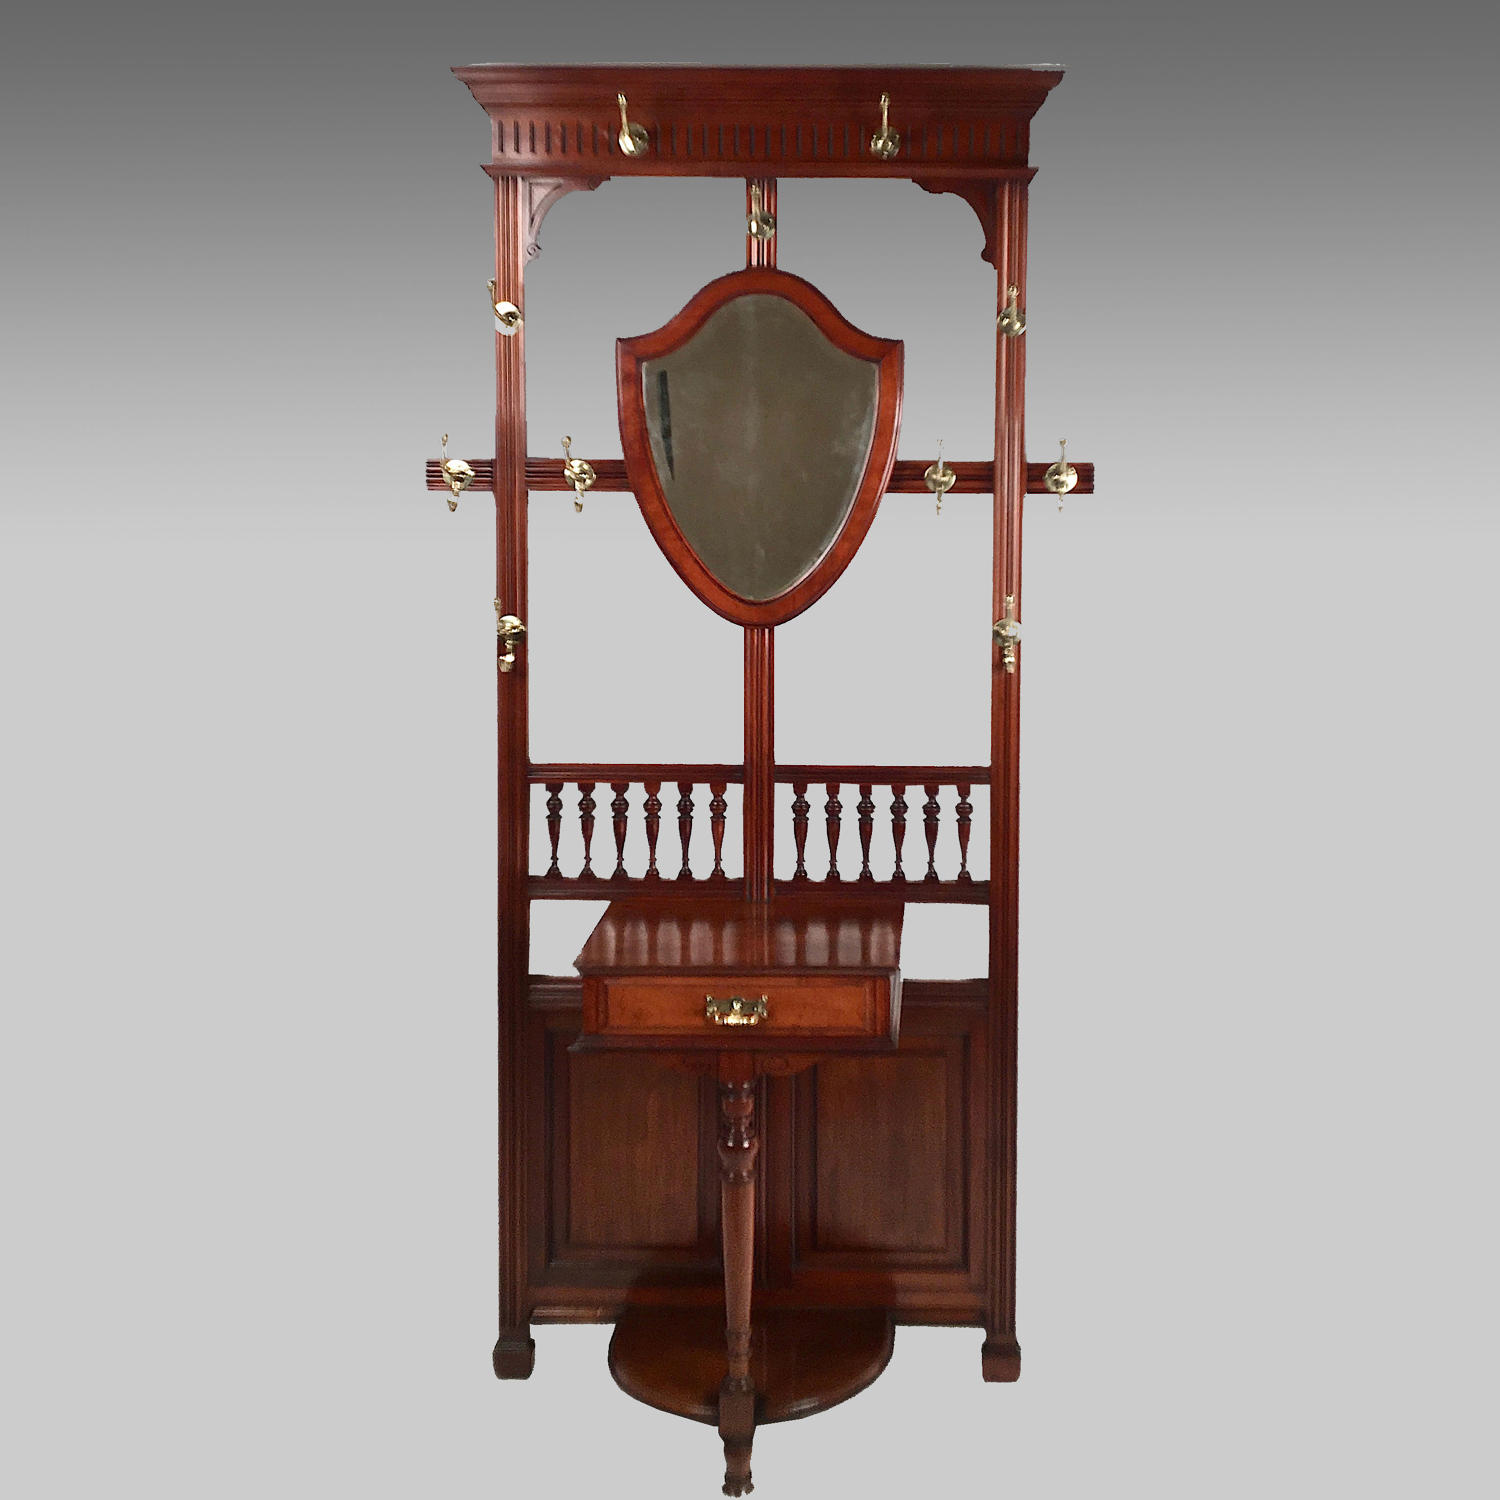 19th century walnut hall stand in the aesthetic movement style